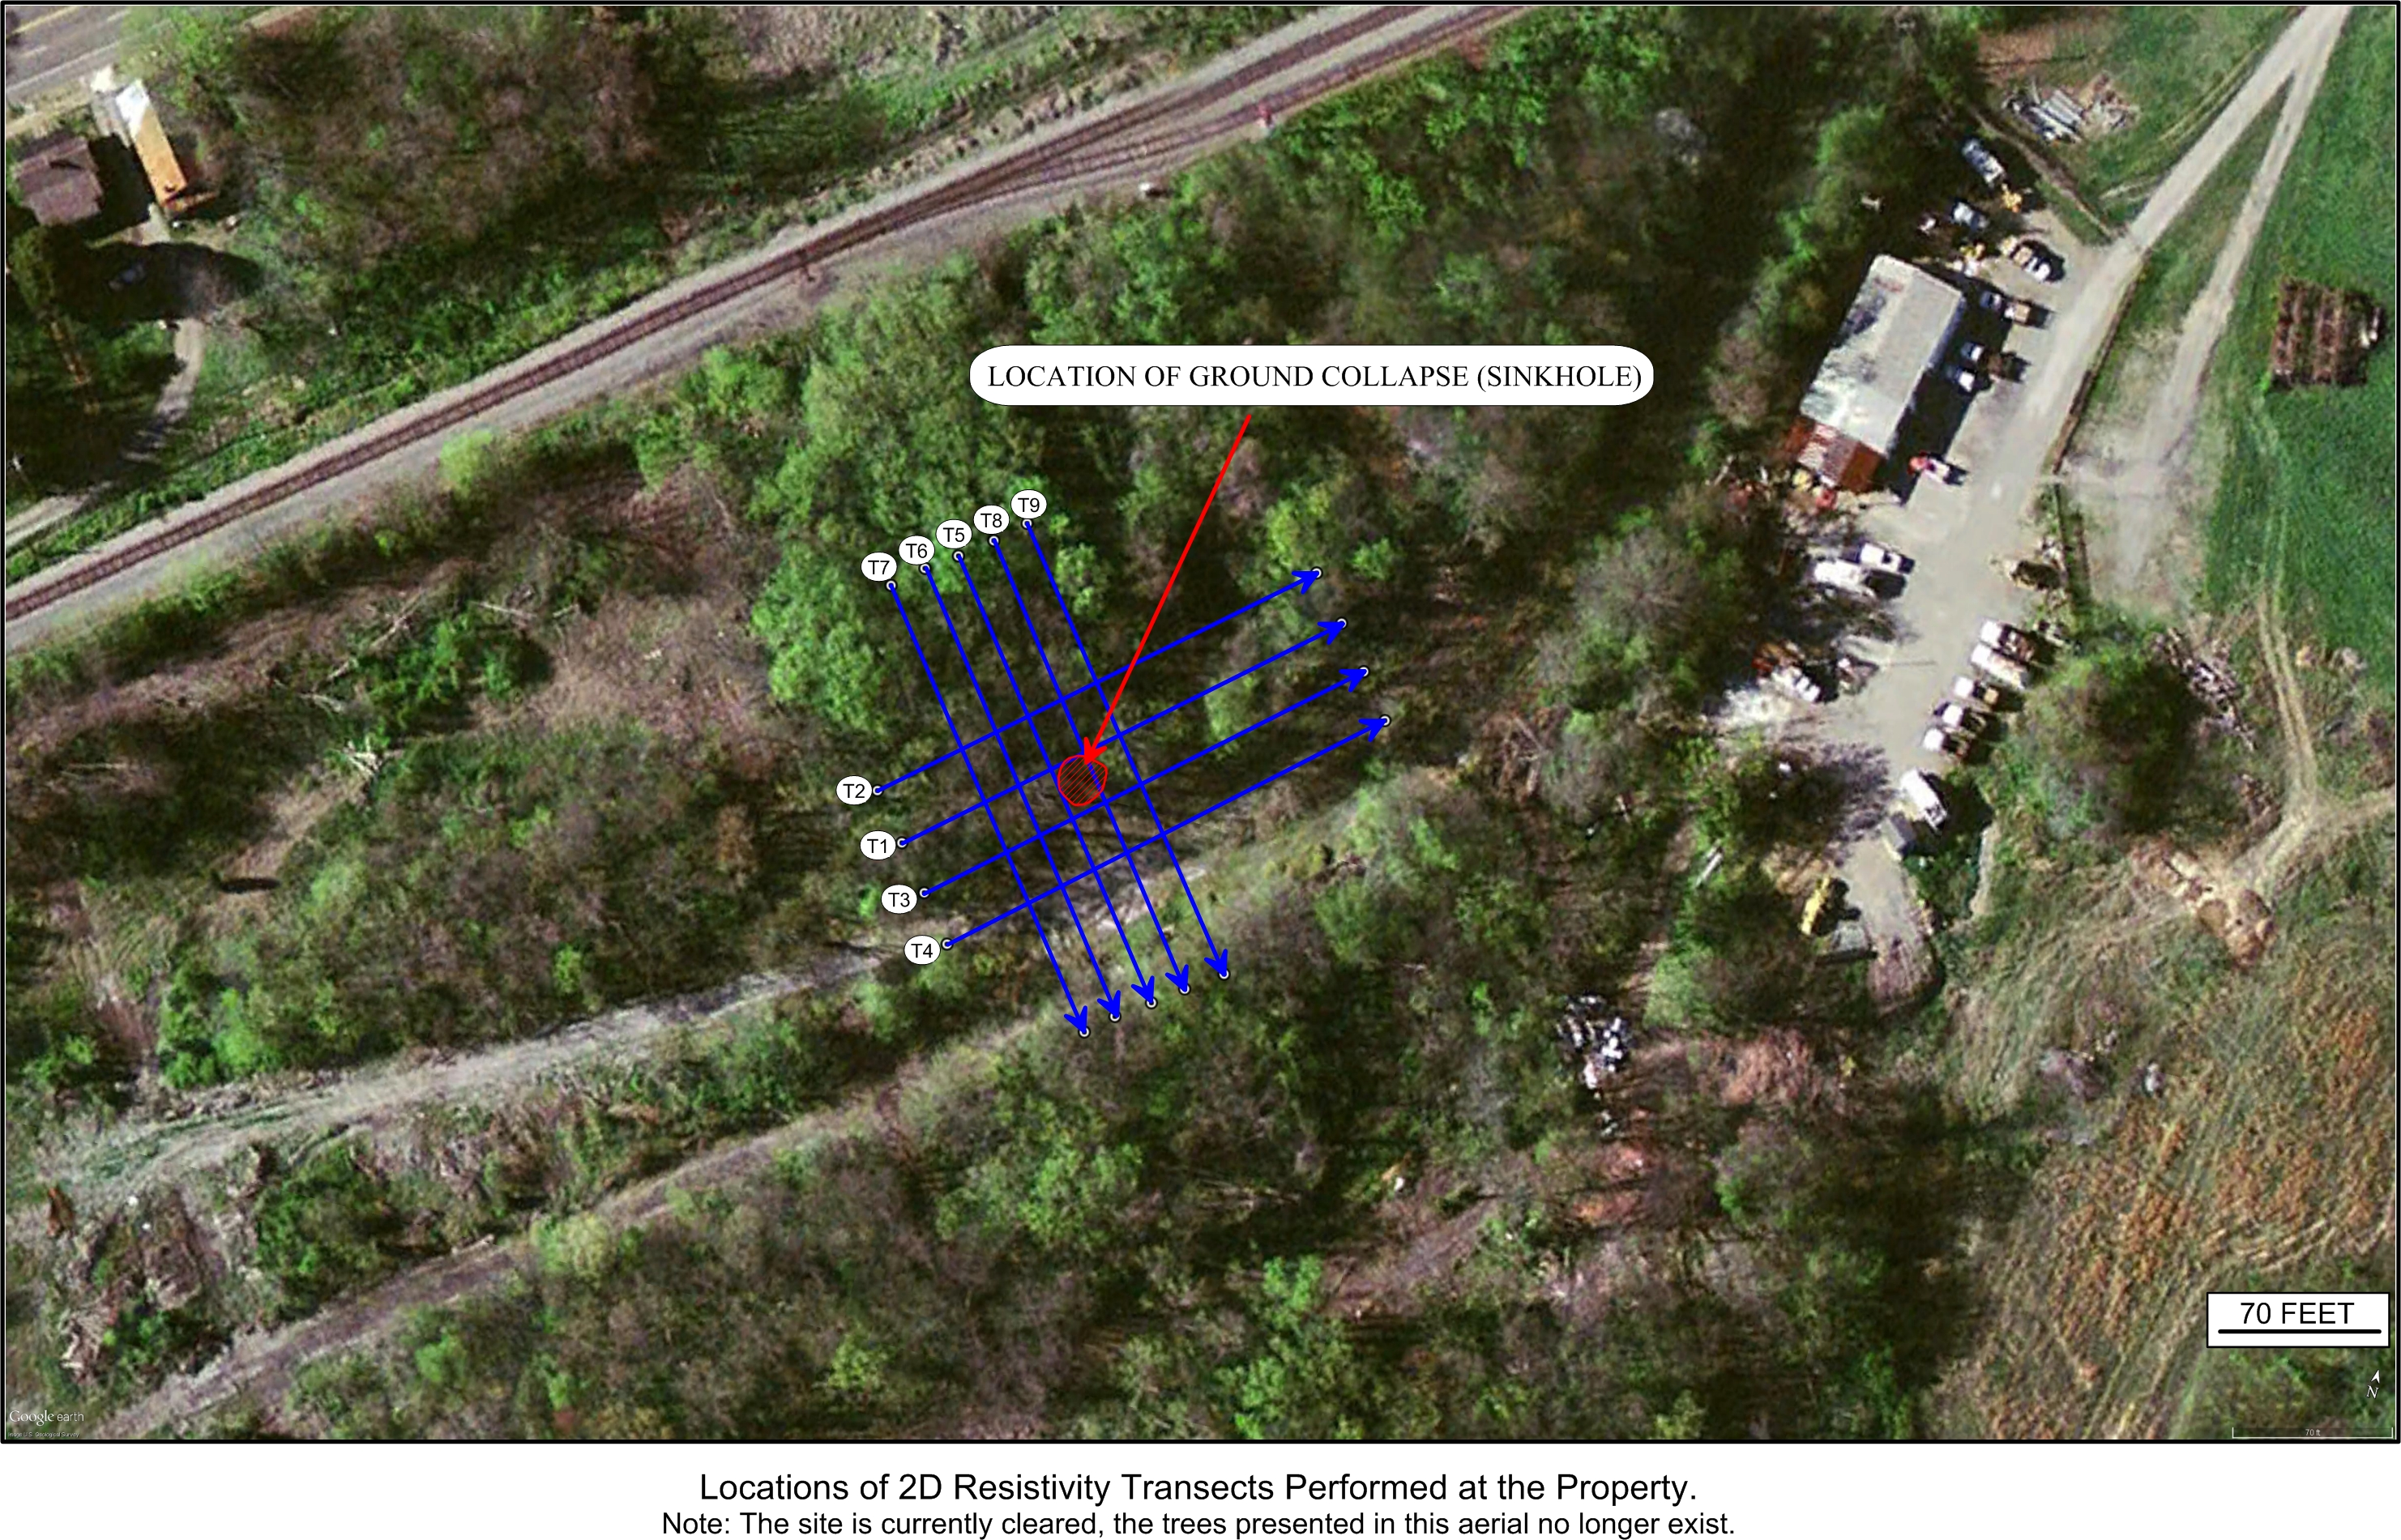 Geophysical Mapping Of A Sinkhole Pyramid Geophysical Services - Soil resistivity map us